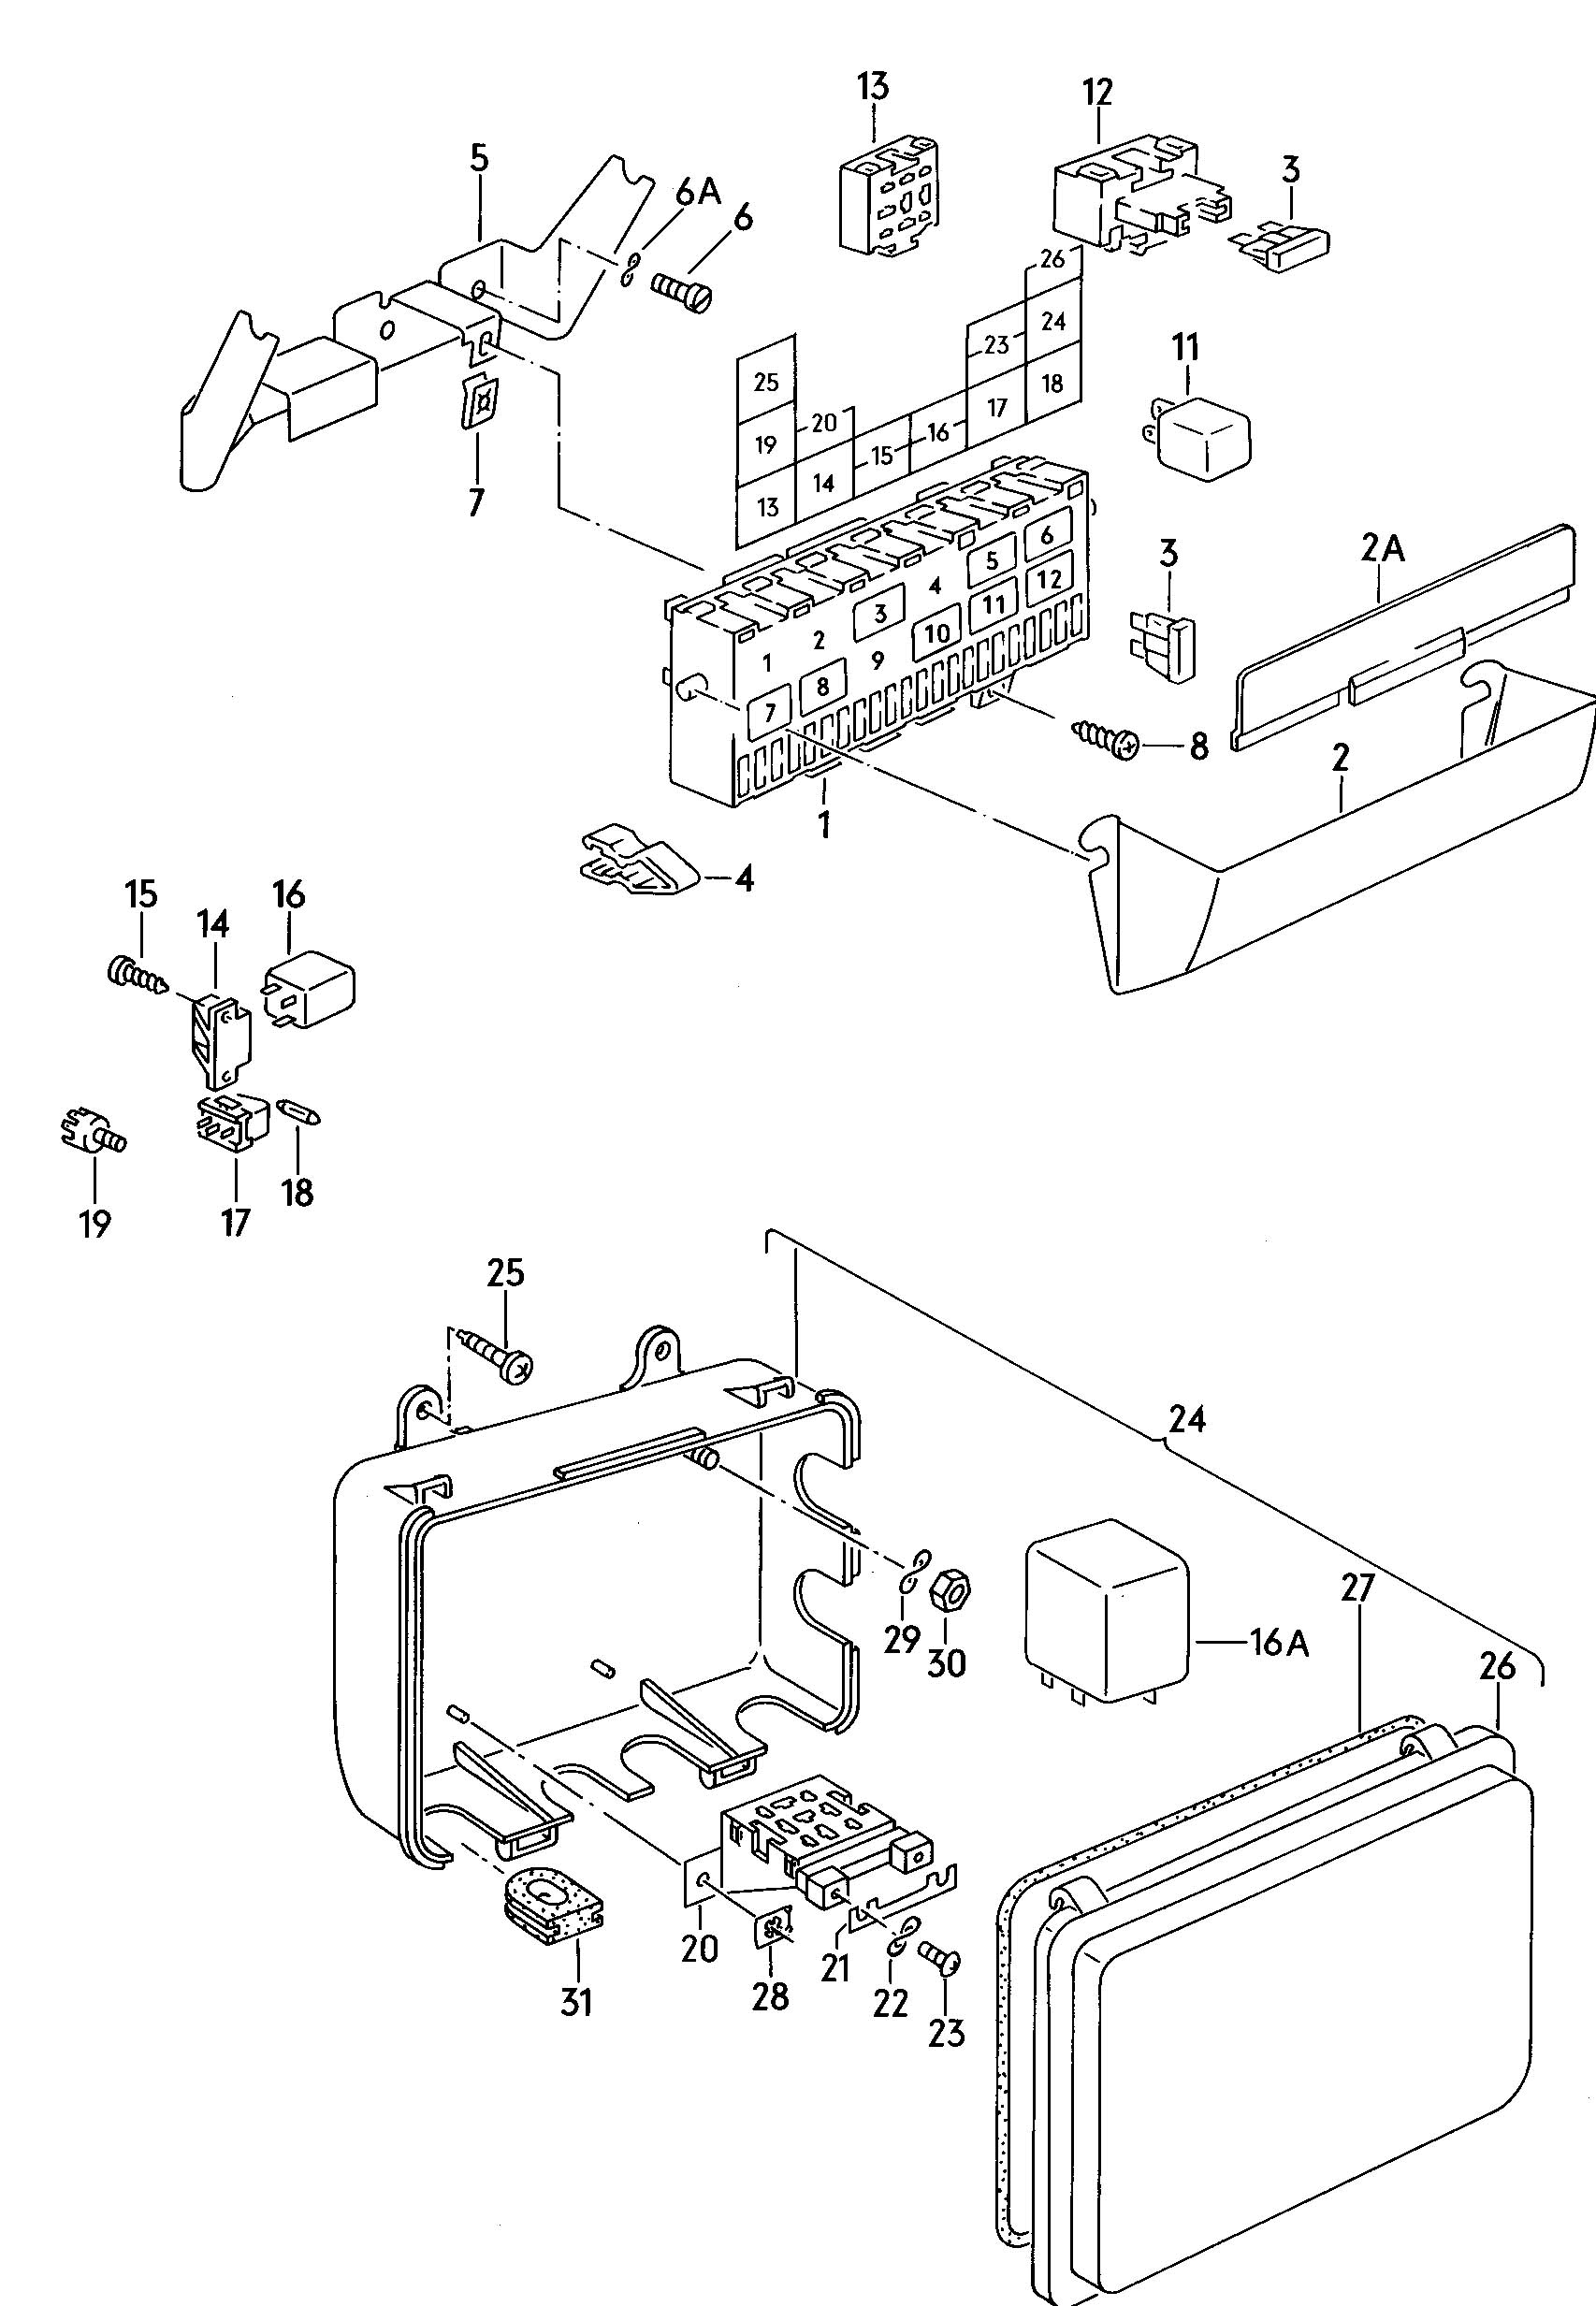 2001 subaru outback parts diagram of a shirt forester engine mount free